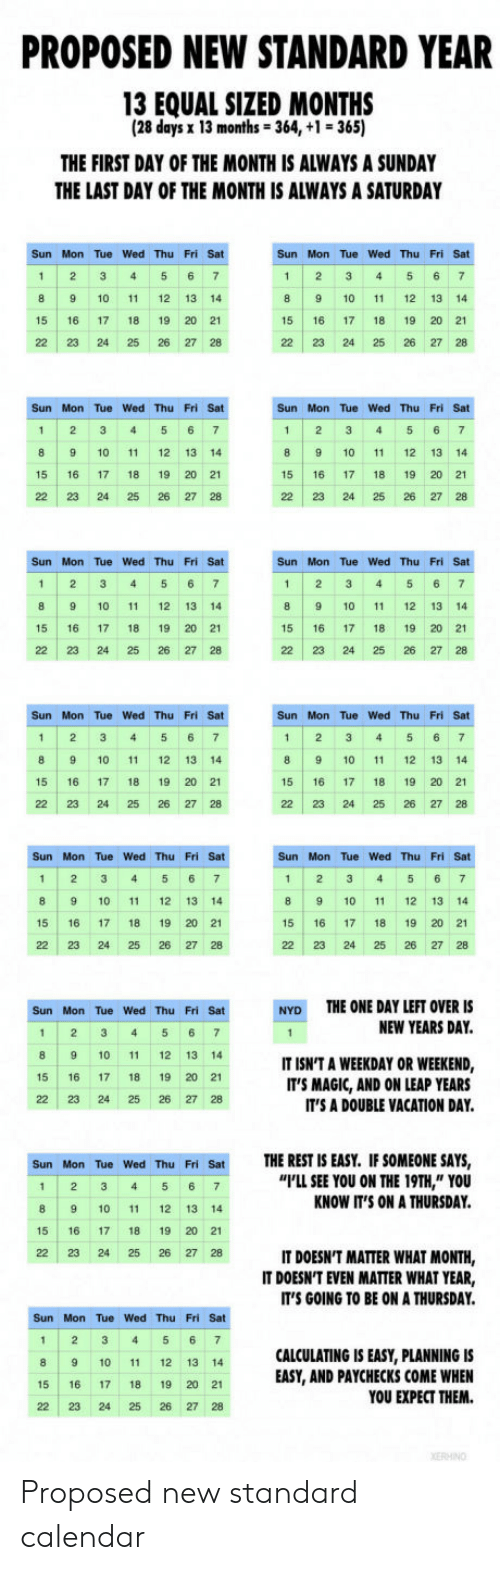 "Calendar, Magic, and Vacation: PROPOSED NEW STANDARD YEAR  13 EQUAL SIZED MONTHS  (28 days x 13 months-364, +1 365)  THE FIRST DAY OF THE MONTH IS ALWAYS A SUNDAY  THE LAST DAY OF THE MONTH IS ALWAYS A SATURDAY  Sun Mon Tue Wed Thu Fri Sat  8 9 10 11 12 13 14  15 16 17 18 19 20 21  22 23 24 25 26 27 28  Sun Mon Tue Wed Thu Fri Sat  1 2 3 456 7  8 9 10 1 12 13 14  15 16 17 18 19 20 21  22 23 24 25 26 27 28  Sun Mon Tue Wed Thu Fri Sat  1 2 3 45 6 7  8 9 10 11 12 13 14  15 16 17 18 19 20 21  22 23 24 25 26 27 28  Sun Mon Tue Wed Thu Fri Sat  1 2 3 45 6 7  8 9 10 11 12 13 14  15 16 17 18 19 20 2  221232425262728  Sun Mon Tue Wed Thu Fri Sat  1 2 3 4 5 6 7  8 9 10 1 12 13 14  15 16 17 18 19 20 21  22 23 24 25 26 27 28  Sun Mon Tue Wed Thu Fri Sat  1 2 3 4 5 6 7  8 9 10 11 12 13 14  15 16 17 18 19 20 21  22 23 24 25 26 27 28  Sun Mon Tue Wed Thu Fri Sat  Sun Mon Tue Wed Thu Fri Sat  8 9 10 11 12 13 14  15 16 17 18 19 20 21  22 23 24 25 26 27 28  8 9 10 11 12 13 14  15 16 17 18 19 20 21  22 23 24 25 26 27 28  Sun Mon Tue Wed Thu Fri Sat  1 2 345 67  8 9 10 11 12 13 14  15 16 17 18 19 20 21  22 23 24 25 26 27 28  Sun Mon Tue Wed Thu Fri Sat  1 2 345 6 7  8 9 10 11 12 13 14  15 16 1718 19 20 21  22 23 24 25 26 27 28  THE ONE DAY LEFT OVER IS  NEW YEARS DAY.  Sun Mon Tue Wed Thu Fri Sat  NYD  8 9 10 11 12 13 14  15 16 1718 19 20 21  22 23 24 25 26 27 28  IT ISN'T A WEEKDAY OR WEEKEND,  IT'S MAGIC, AND ON LEAP YEARS  IT'S A DOUBLE VACATION DAY.  THE REST IS EASY. IF SOMEONE SAYS,  I'LL SEE YOU ON THE 19TH,"" YOU  KNOW IT'S ON A THURSDAY  Sun Mon Tue Wed Thu Fri Sat  1 2 34 5 6 7  8 9 10 11 12 13 14  15 16 17 18 19 20 21  22 23 24 25 26 27 28  IT DOESN'T MATTER WHAT MONTH,  IT DOESN'T EVEN MATTER WHAT YEAR,  IT'S GOING TO BE ON A THURSDAY  Sun Mon Tue Wed Thu Fri Sat  1 2 3 4 5 67  8 9 10 11 12 13 14  15 16 17 18 19 20 2  22 23 24 25 26 27 28  CALCULATING IS EASY, PLANNING IS  EASY, AND PAYCHECKS COME WHEN  YOU EXPECT THEM. Proposed new standard calendar"